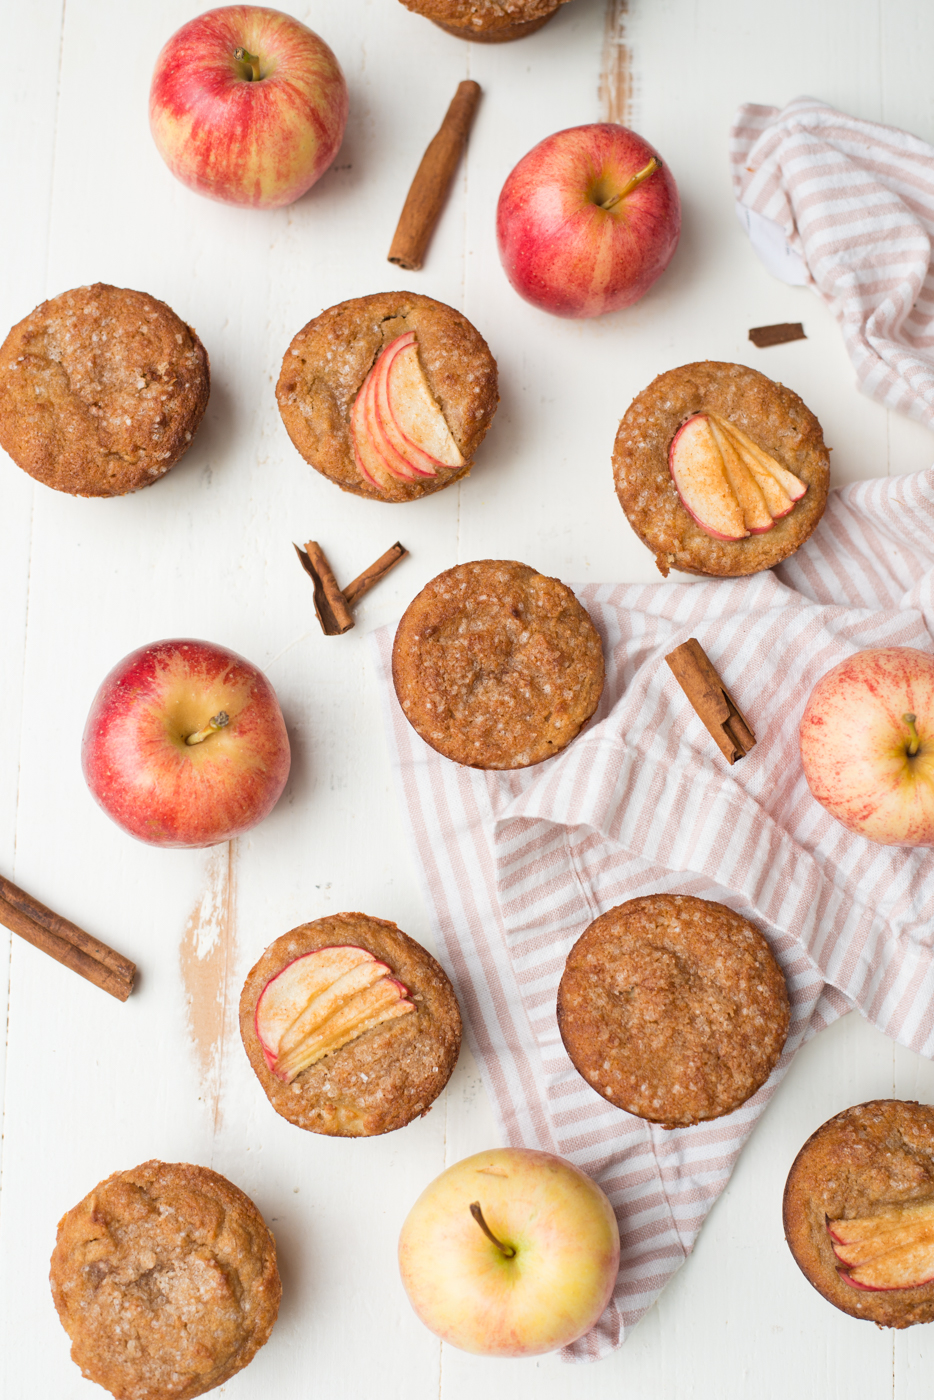 One-Bowl Triple Apple Cider Spiced Muffins are a super tender, totally healthy, and packed with all the flavors of fall. A gluten-free, dairy-free, grain-free recipe. #realfoodwholelife #realfood #recipe #easyrecipe #quickrecipe #healthyrecipe #healthysnack #breakfast #glutenfree #dairyfree #grainfree #nutfree #paleo #muffin #muffinrecipe #apples #applecider #fall #fallrecipe #autumn #applerecipe